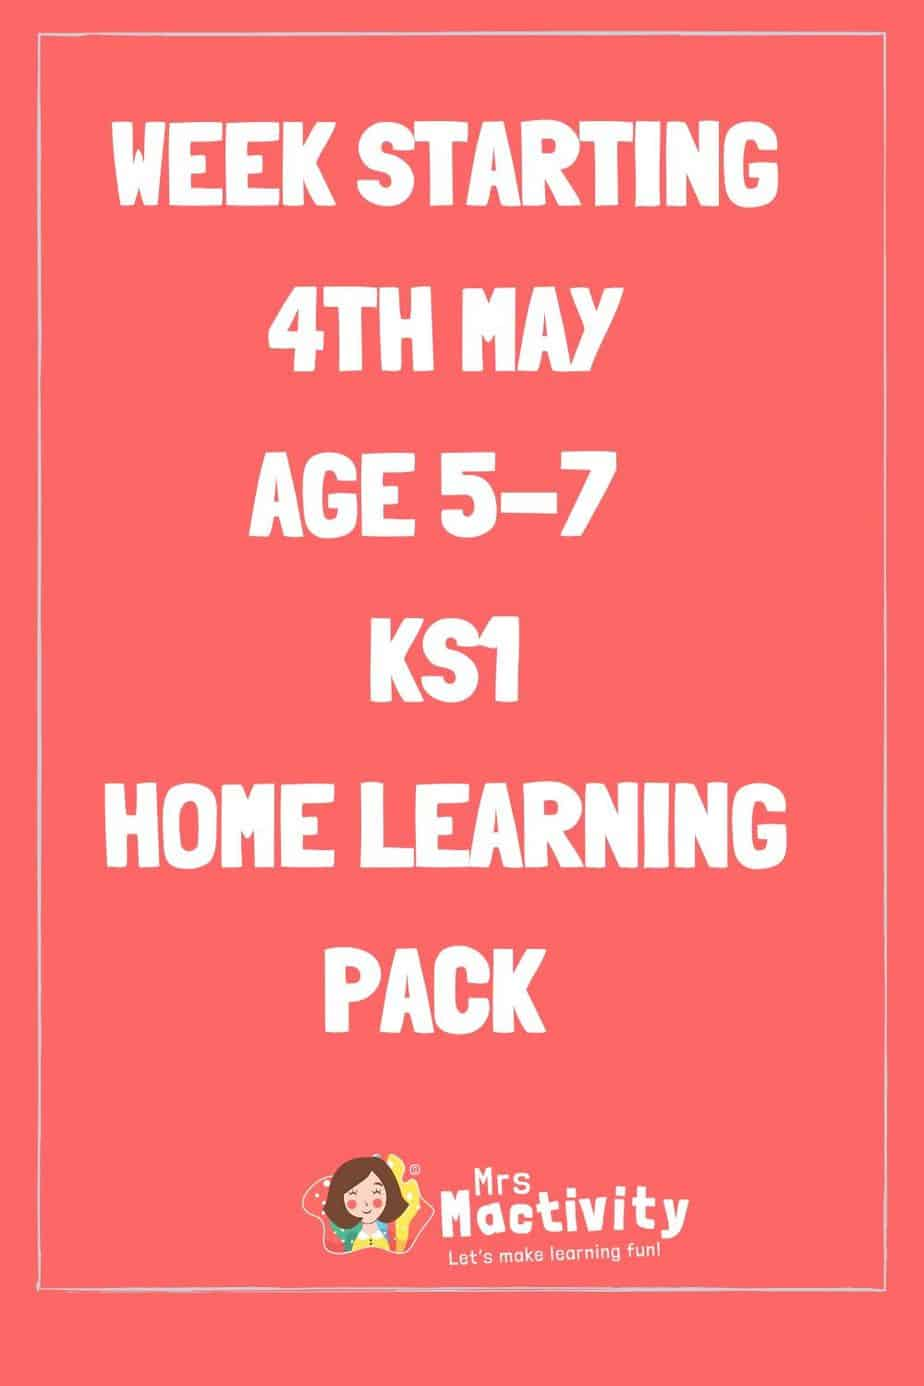 4th May Key Stage 1 (Age 5-7) Weekly Home Learning Pack